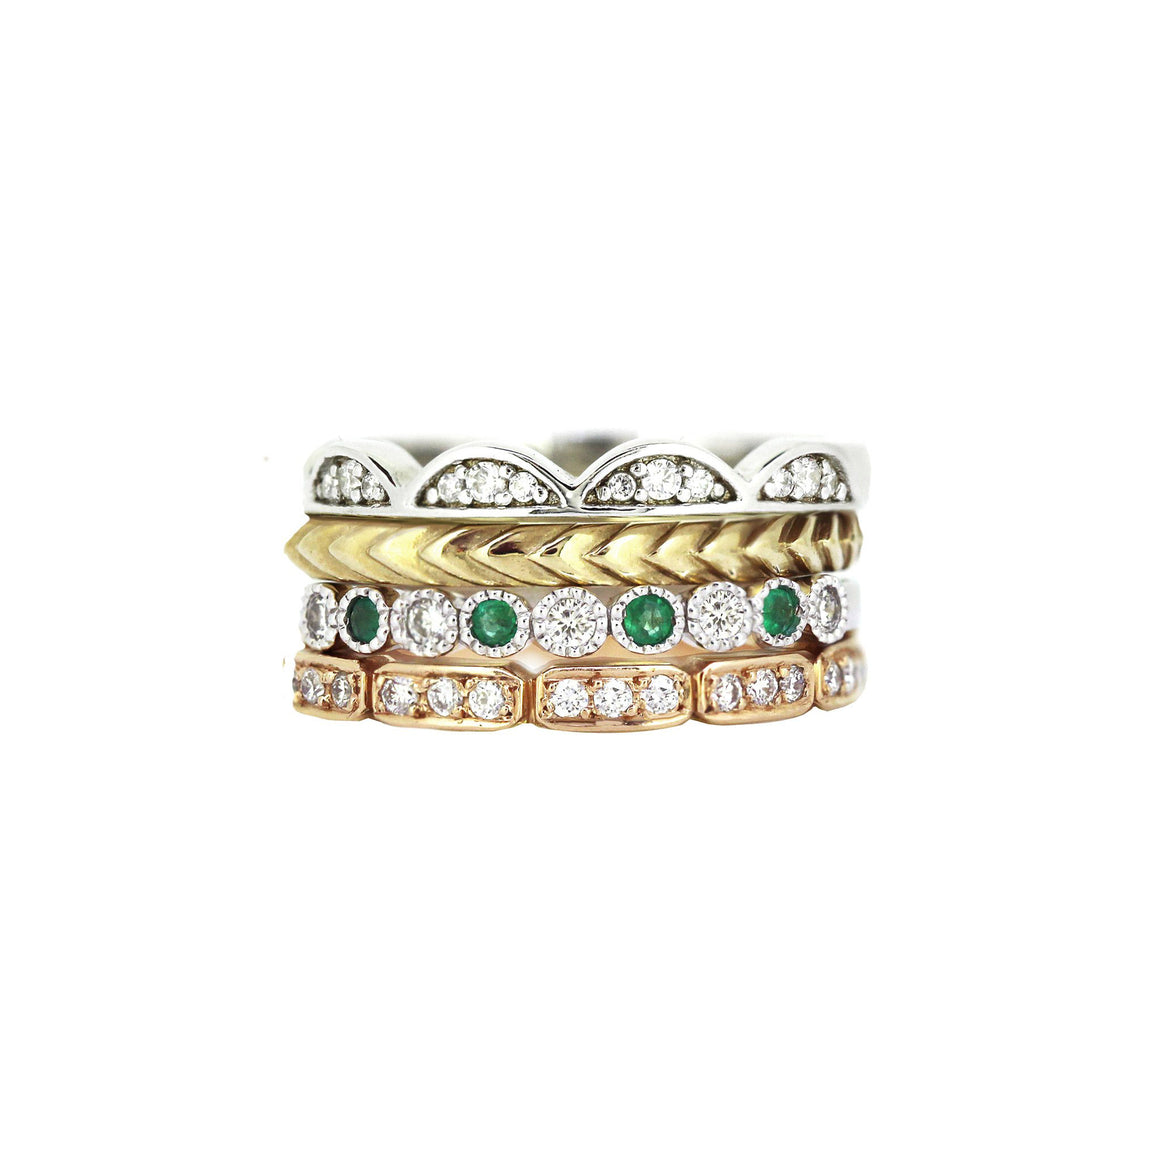 Collection of gemstone diamond and gold stack rings to form the Barcelona stack